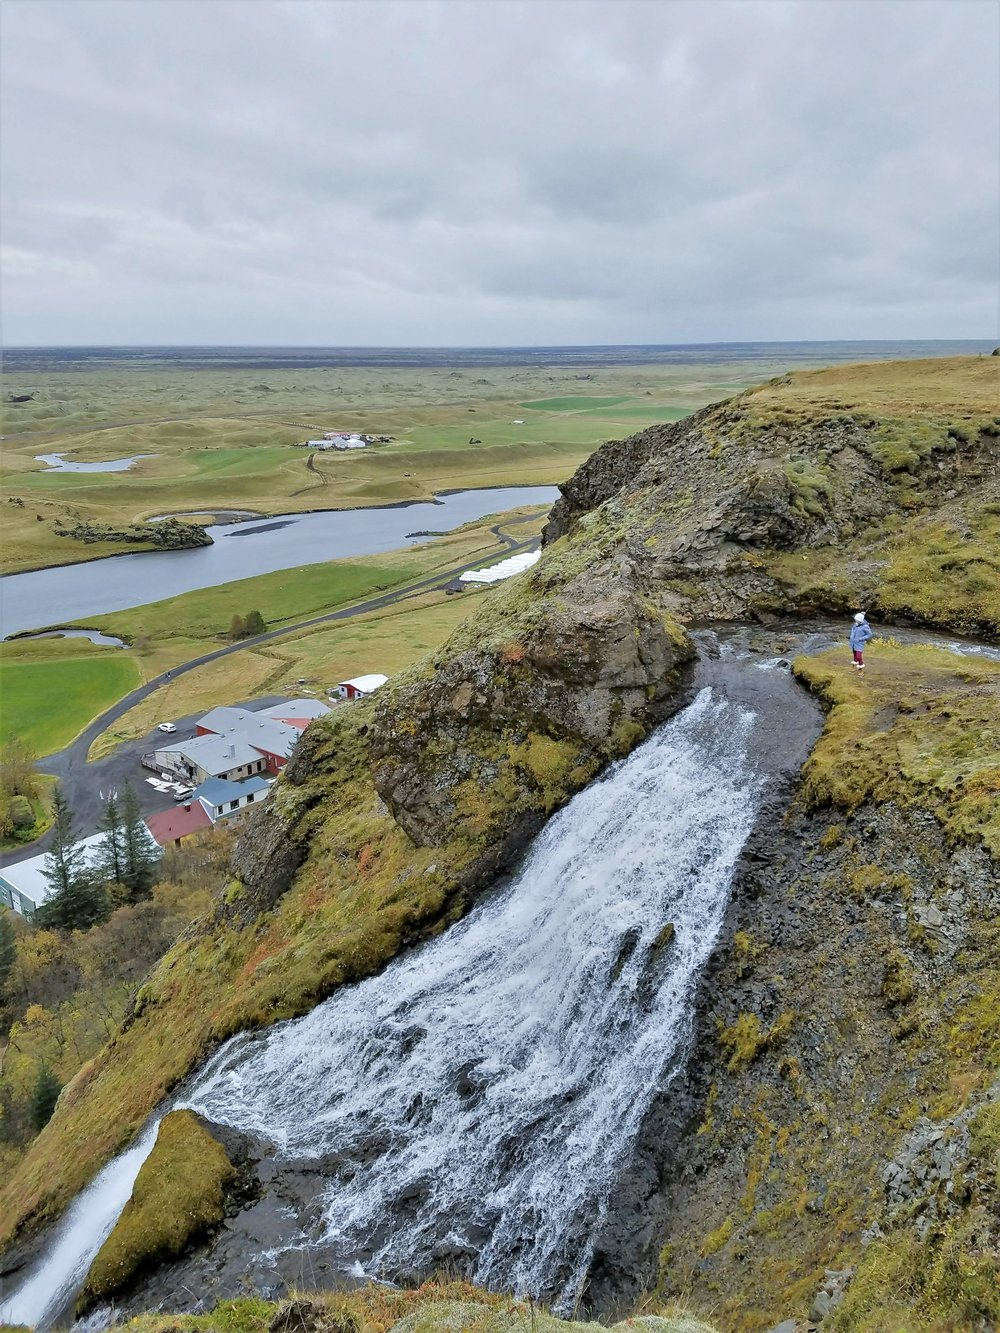 Systrafoss along the south coast of Iceland is a quiet, uncrowded waterfall. You can climb to the top for views all the way to the ocean. #travel #iceland #icelandtravel #waterfalls #icelandwaterfalls #traveldestinations #waterfallsaroundtheworld #icelandsights #europetravel